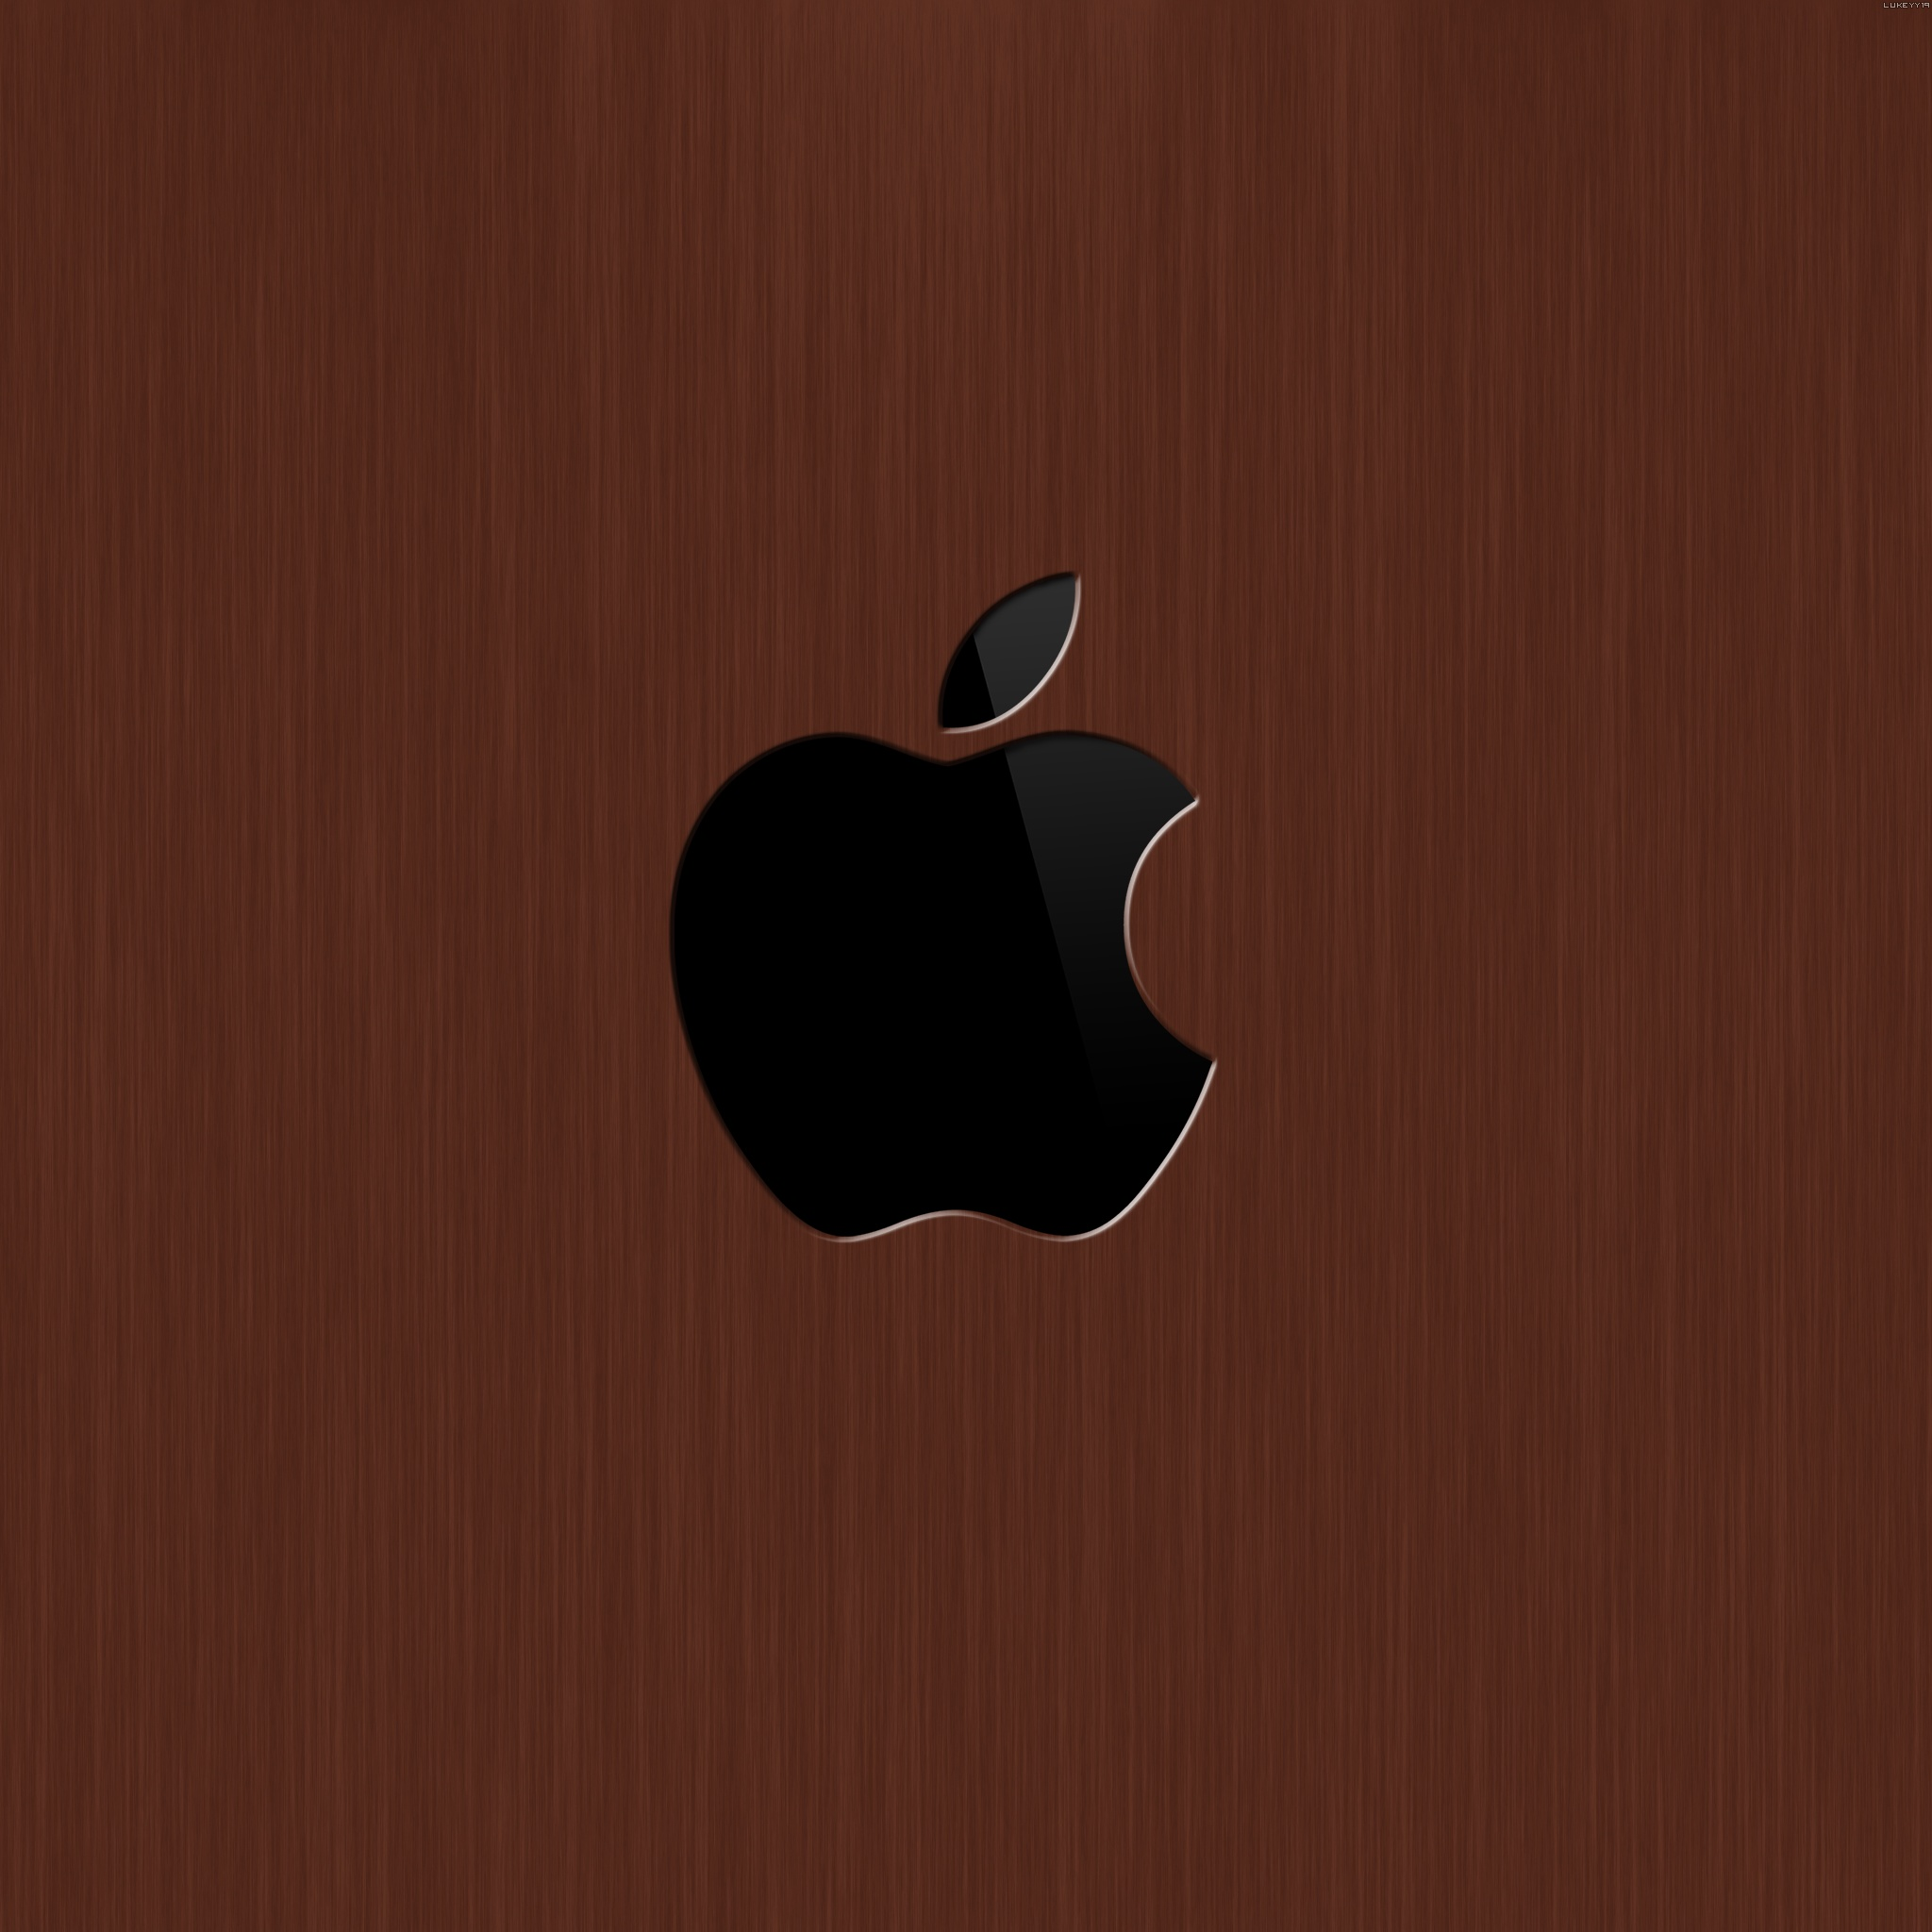 iPad 3 Wallpaper Apple Logo 01 iPad Air Wallpapers iPad Air 2048x2048